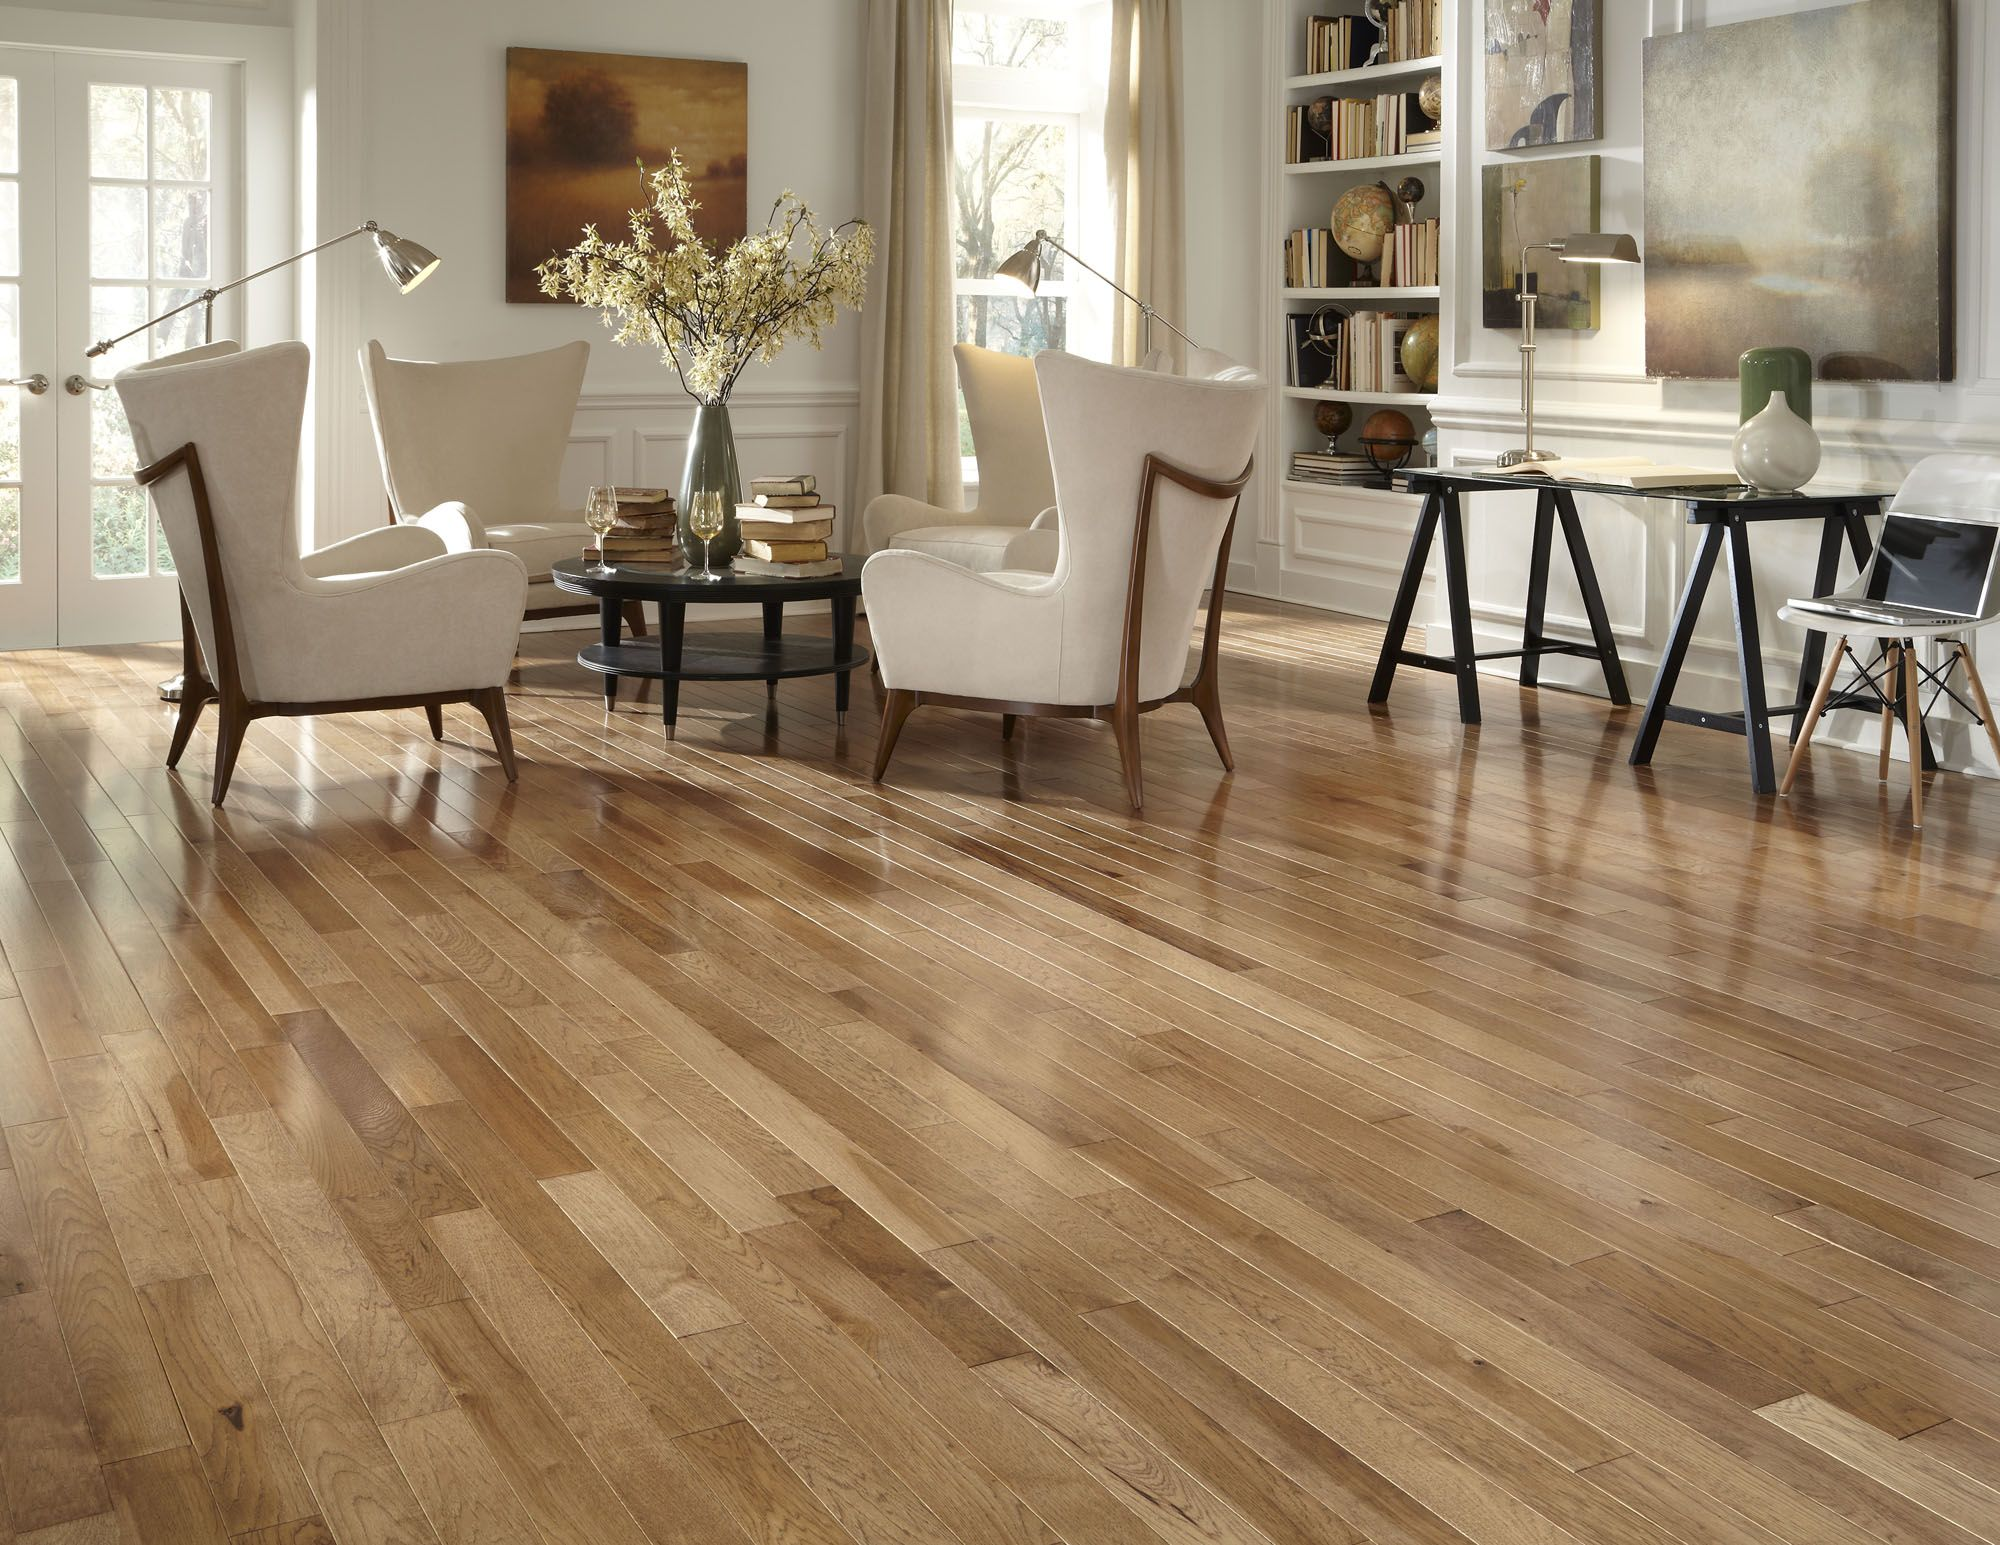 Walnut Hickory Is One Of Many Styles From The Casa De Colour Collection Like It See More In Our Summer 2017 Catalog Www Lumberliquidators Ll